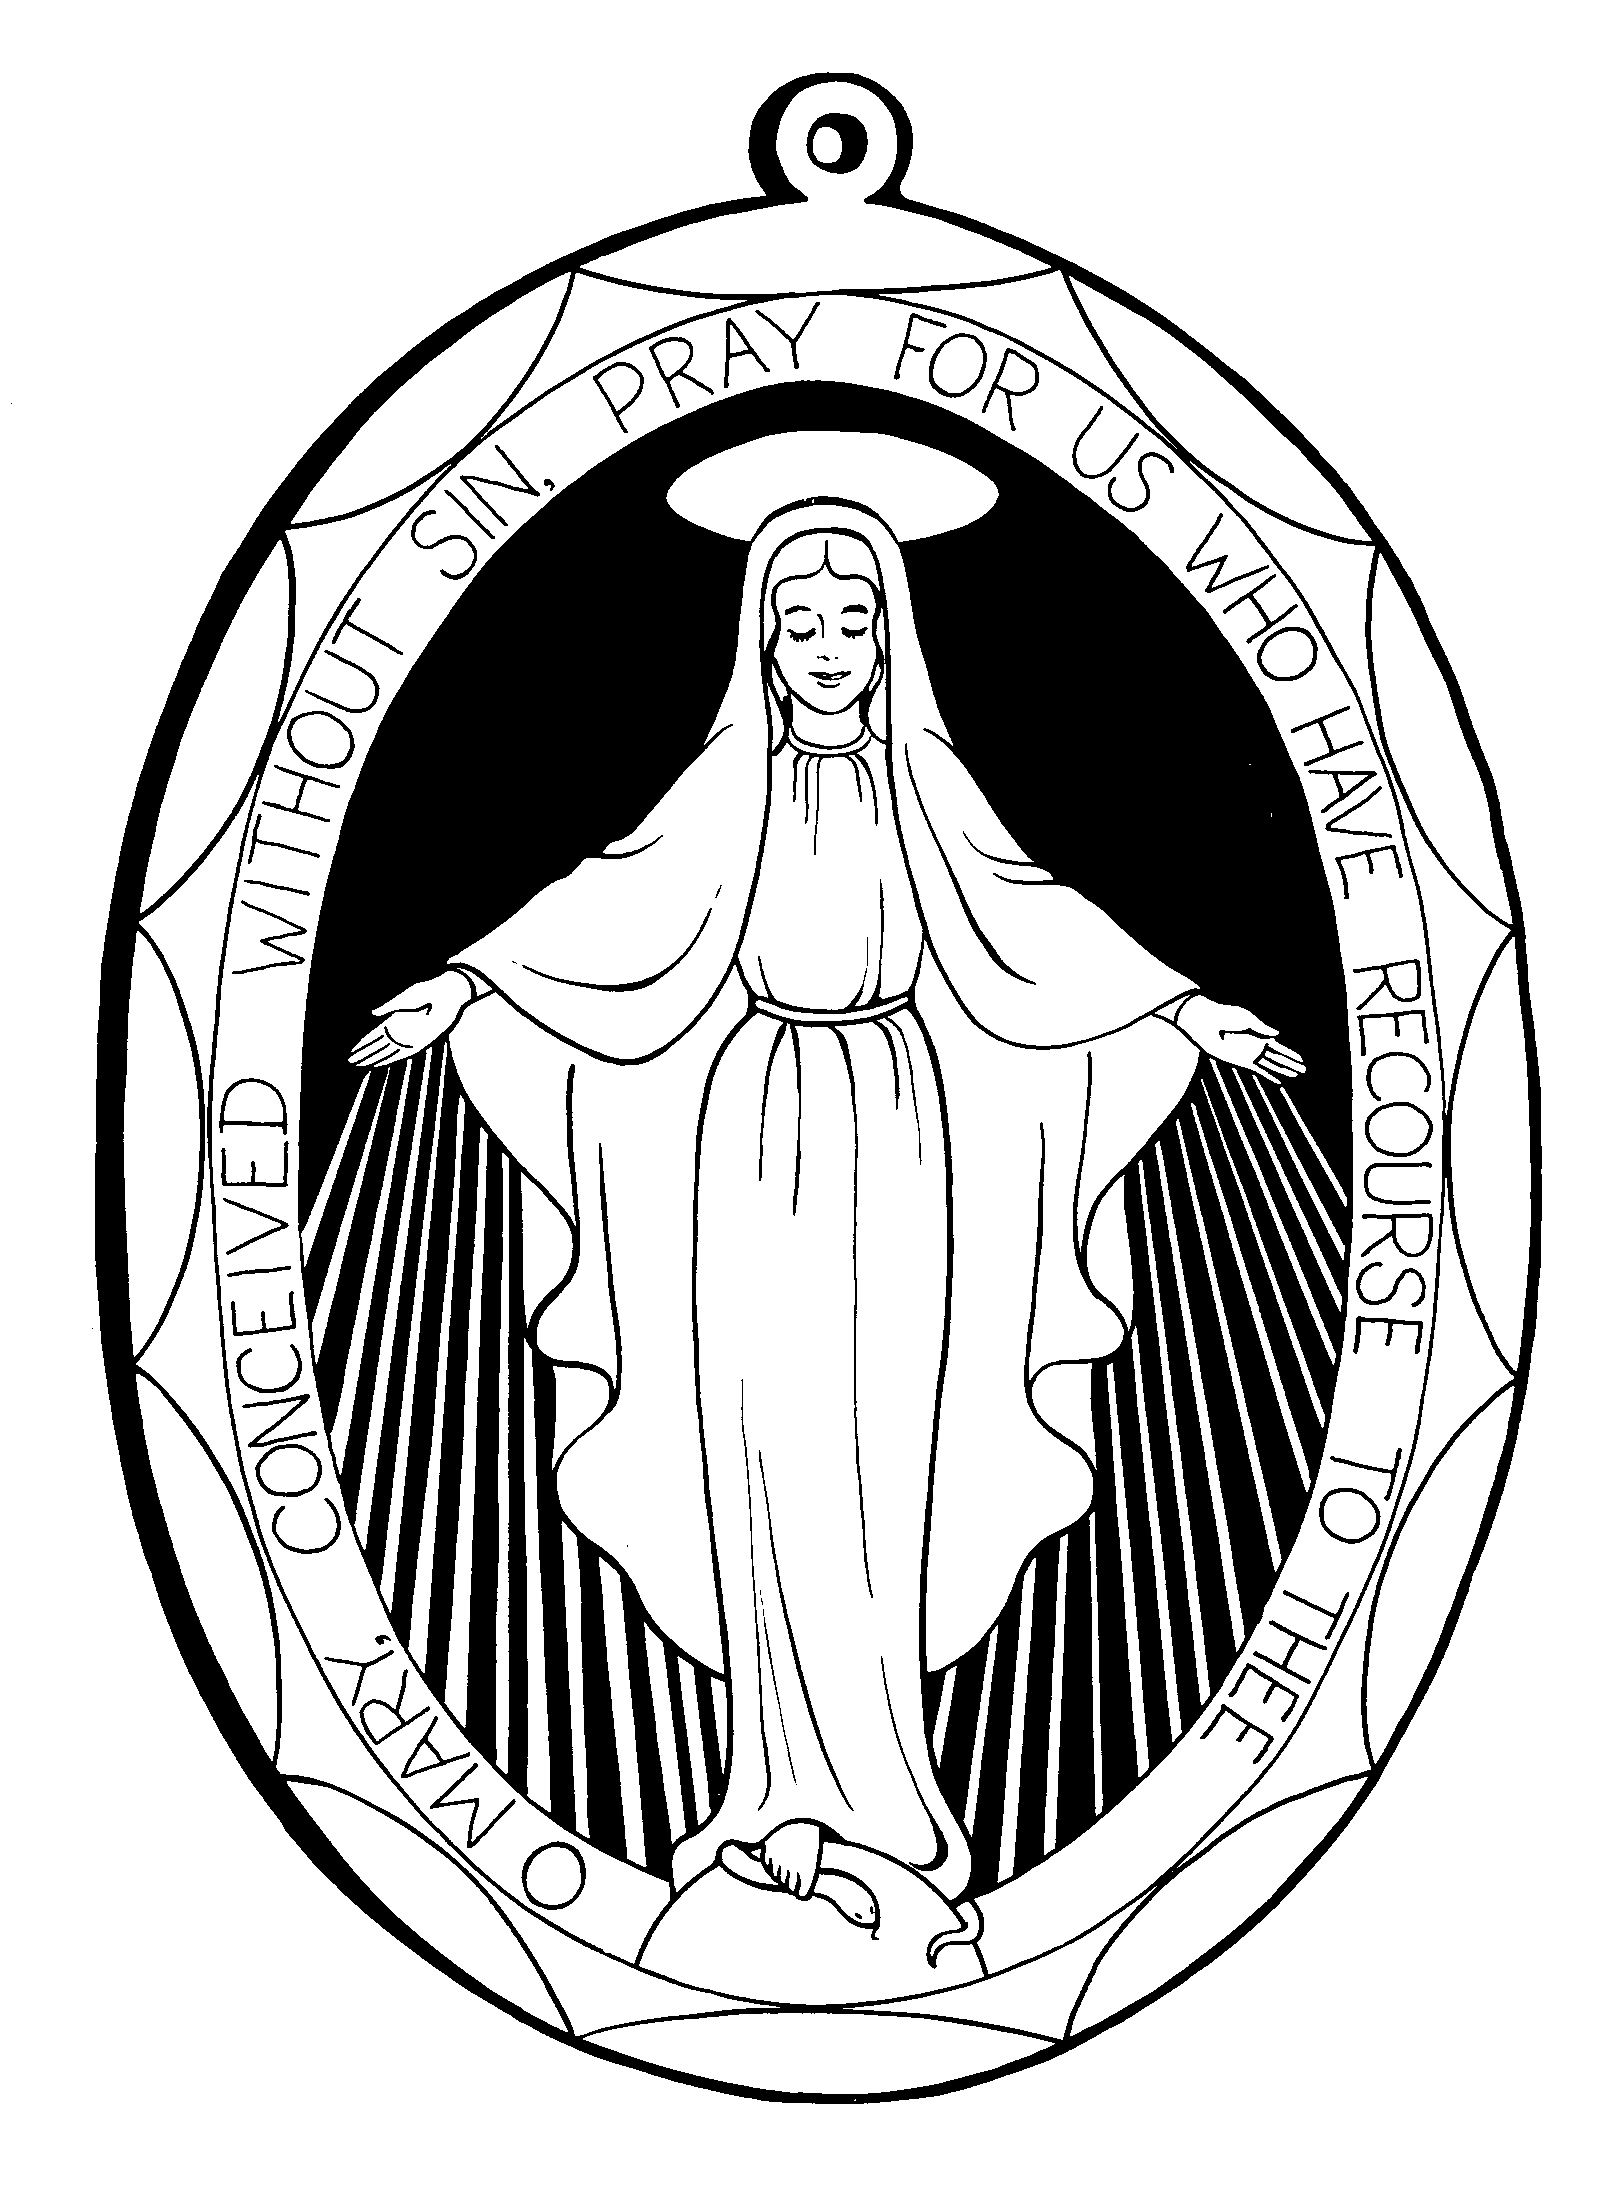 miraculous medal images miraculousmedal1 miraculousmedalback miraculous medal coloring pages